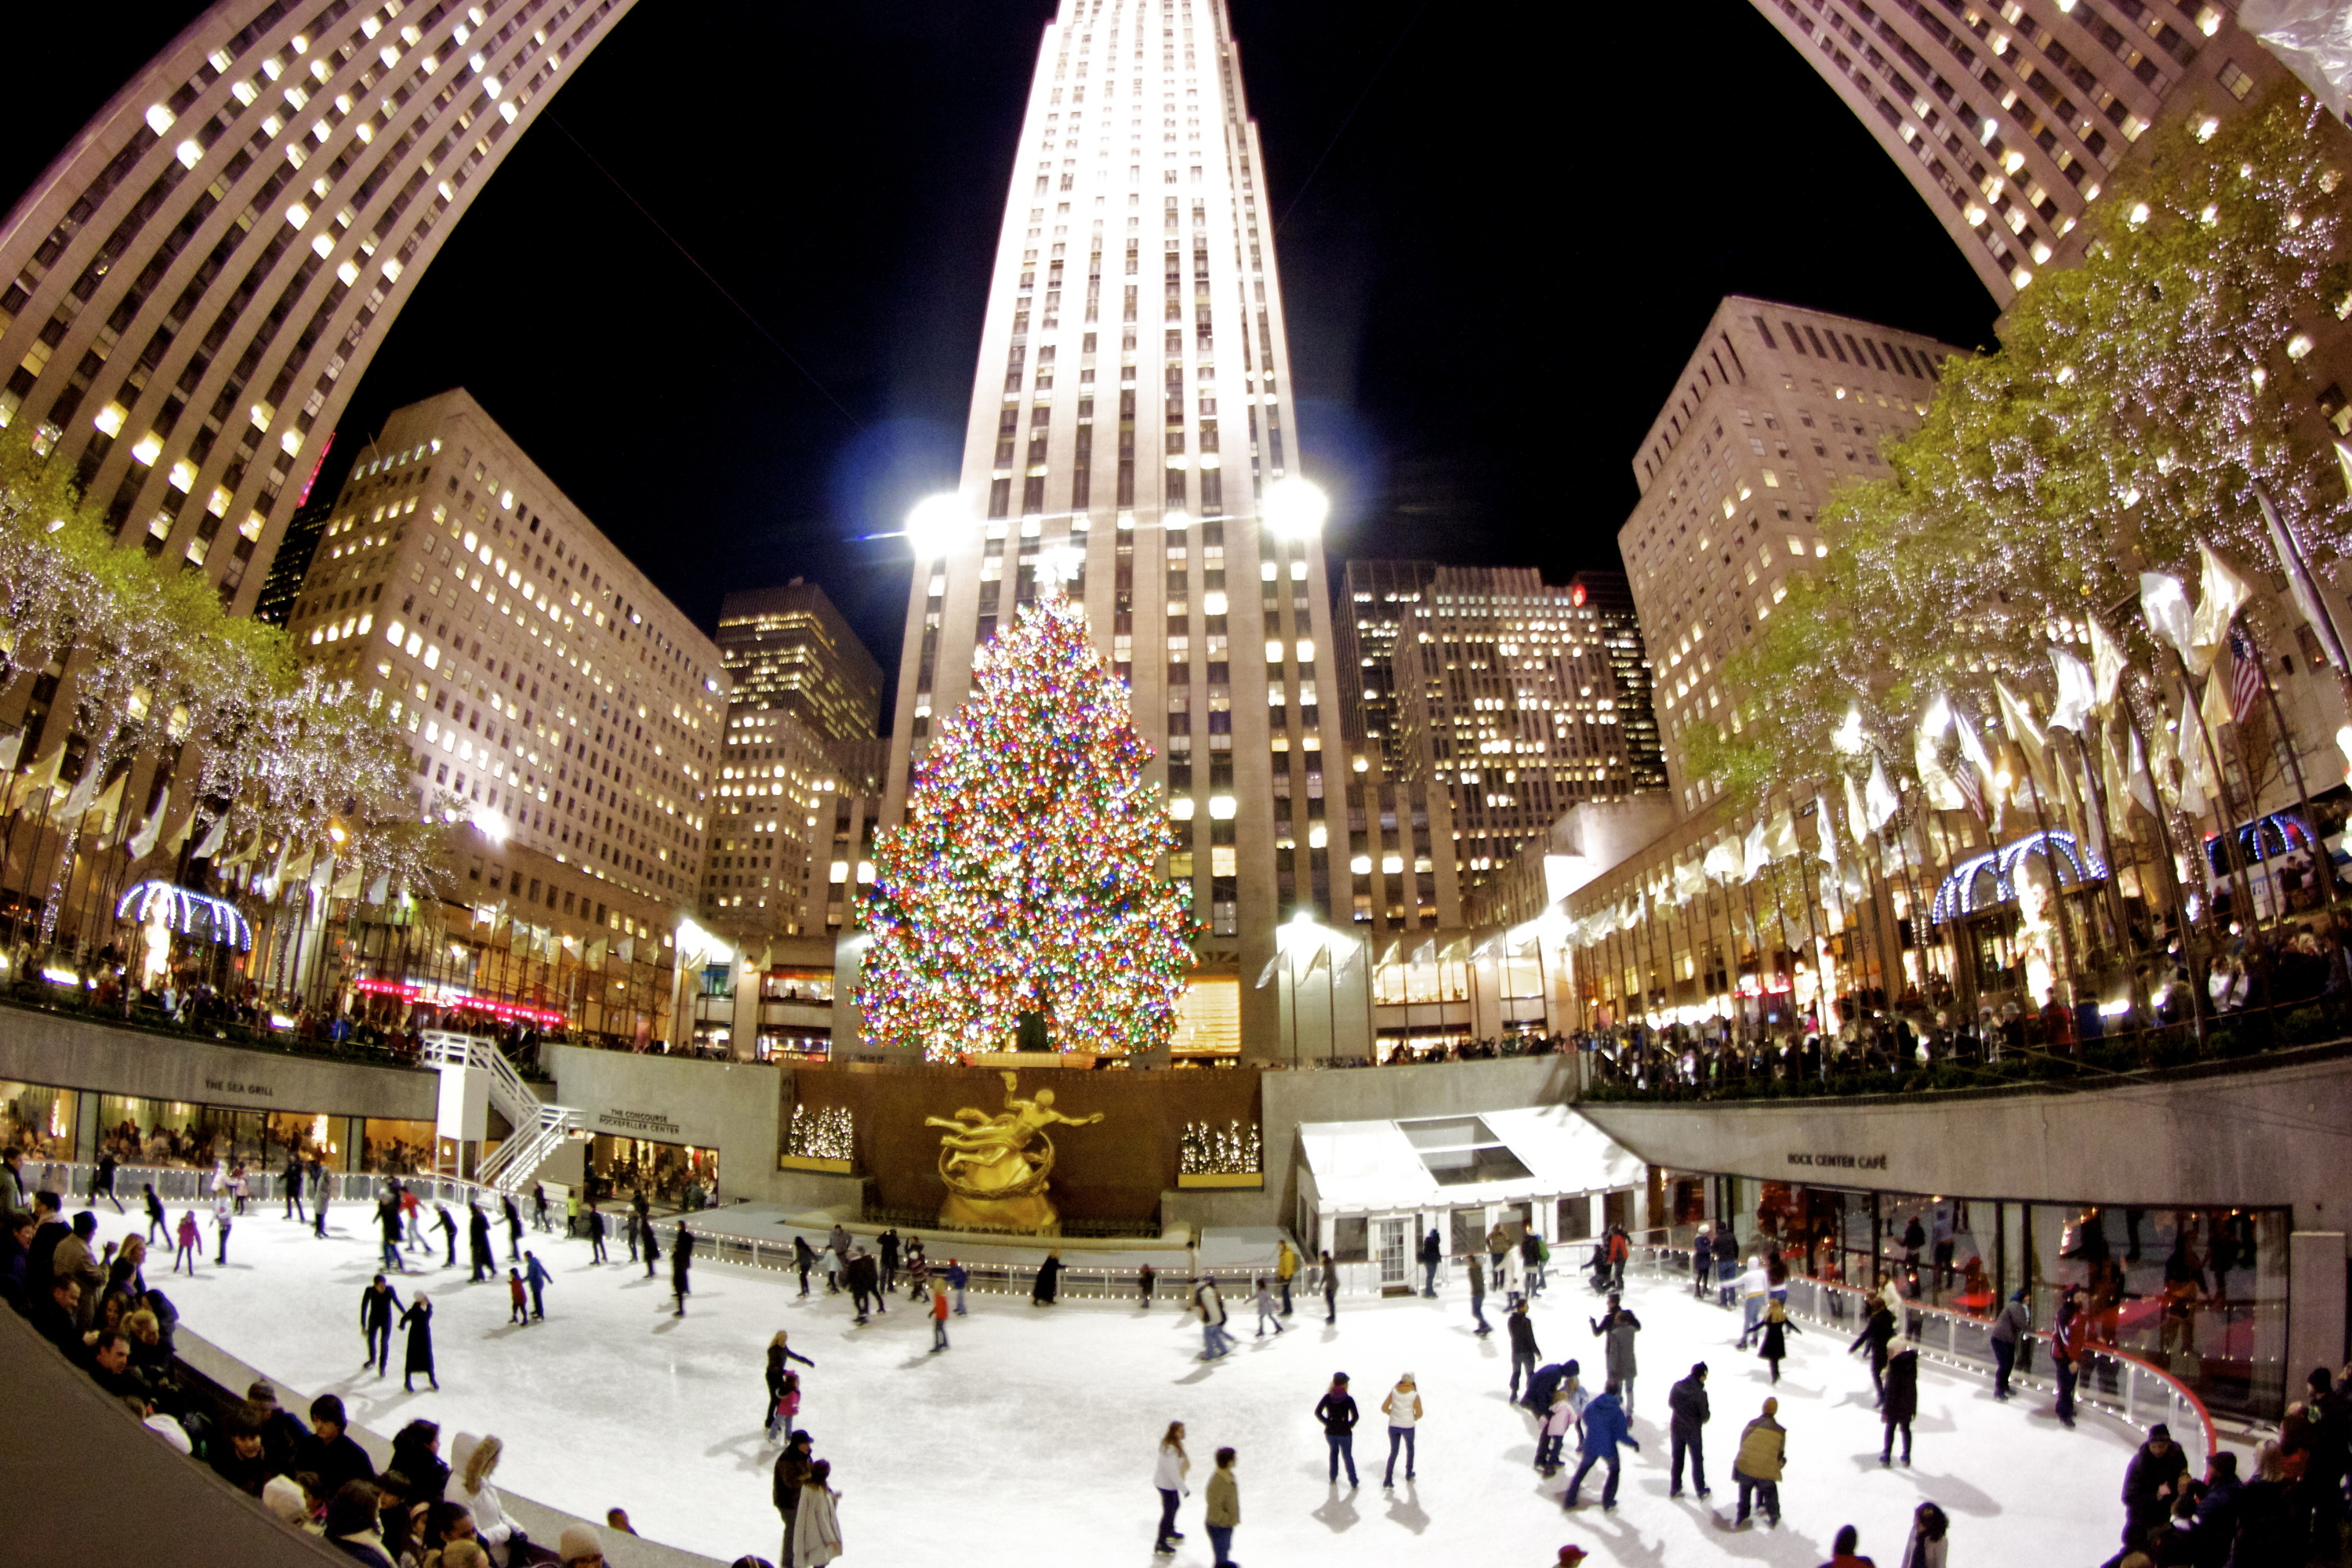 Geroma Weihnachtsbaum.The Rink At Rockefeller Center Guide Including Ticket Info